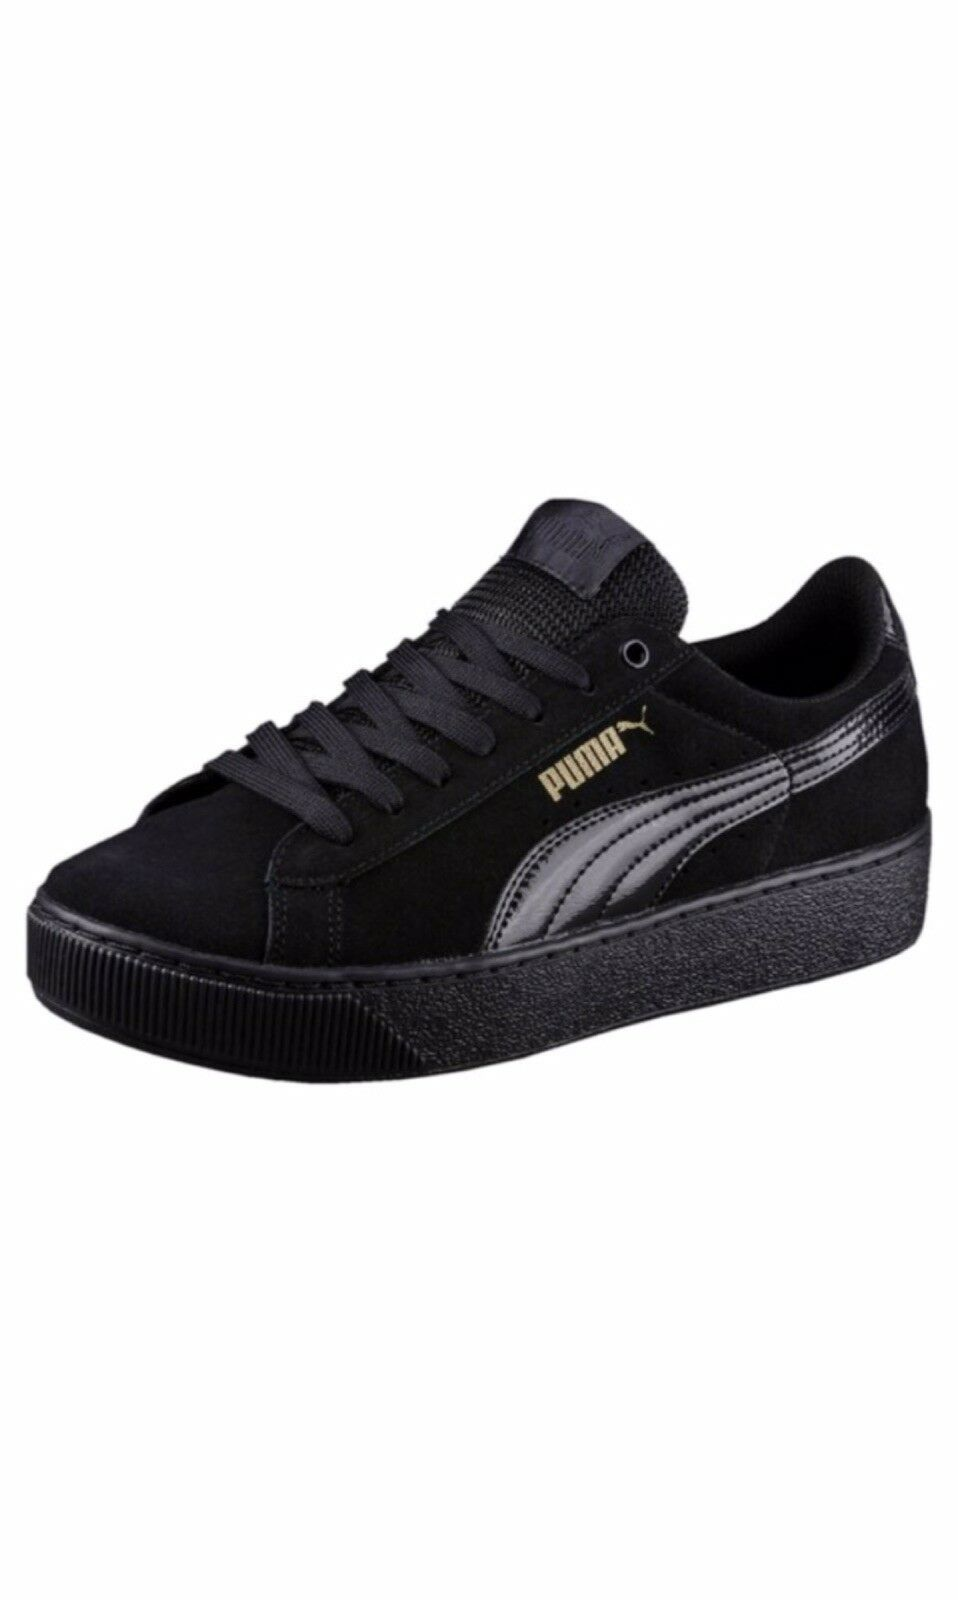 Puma - Black suede 'Vikky' comfort fit trainers The most popular shoes for men and women